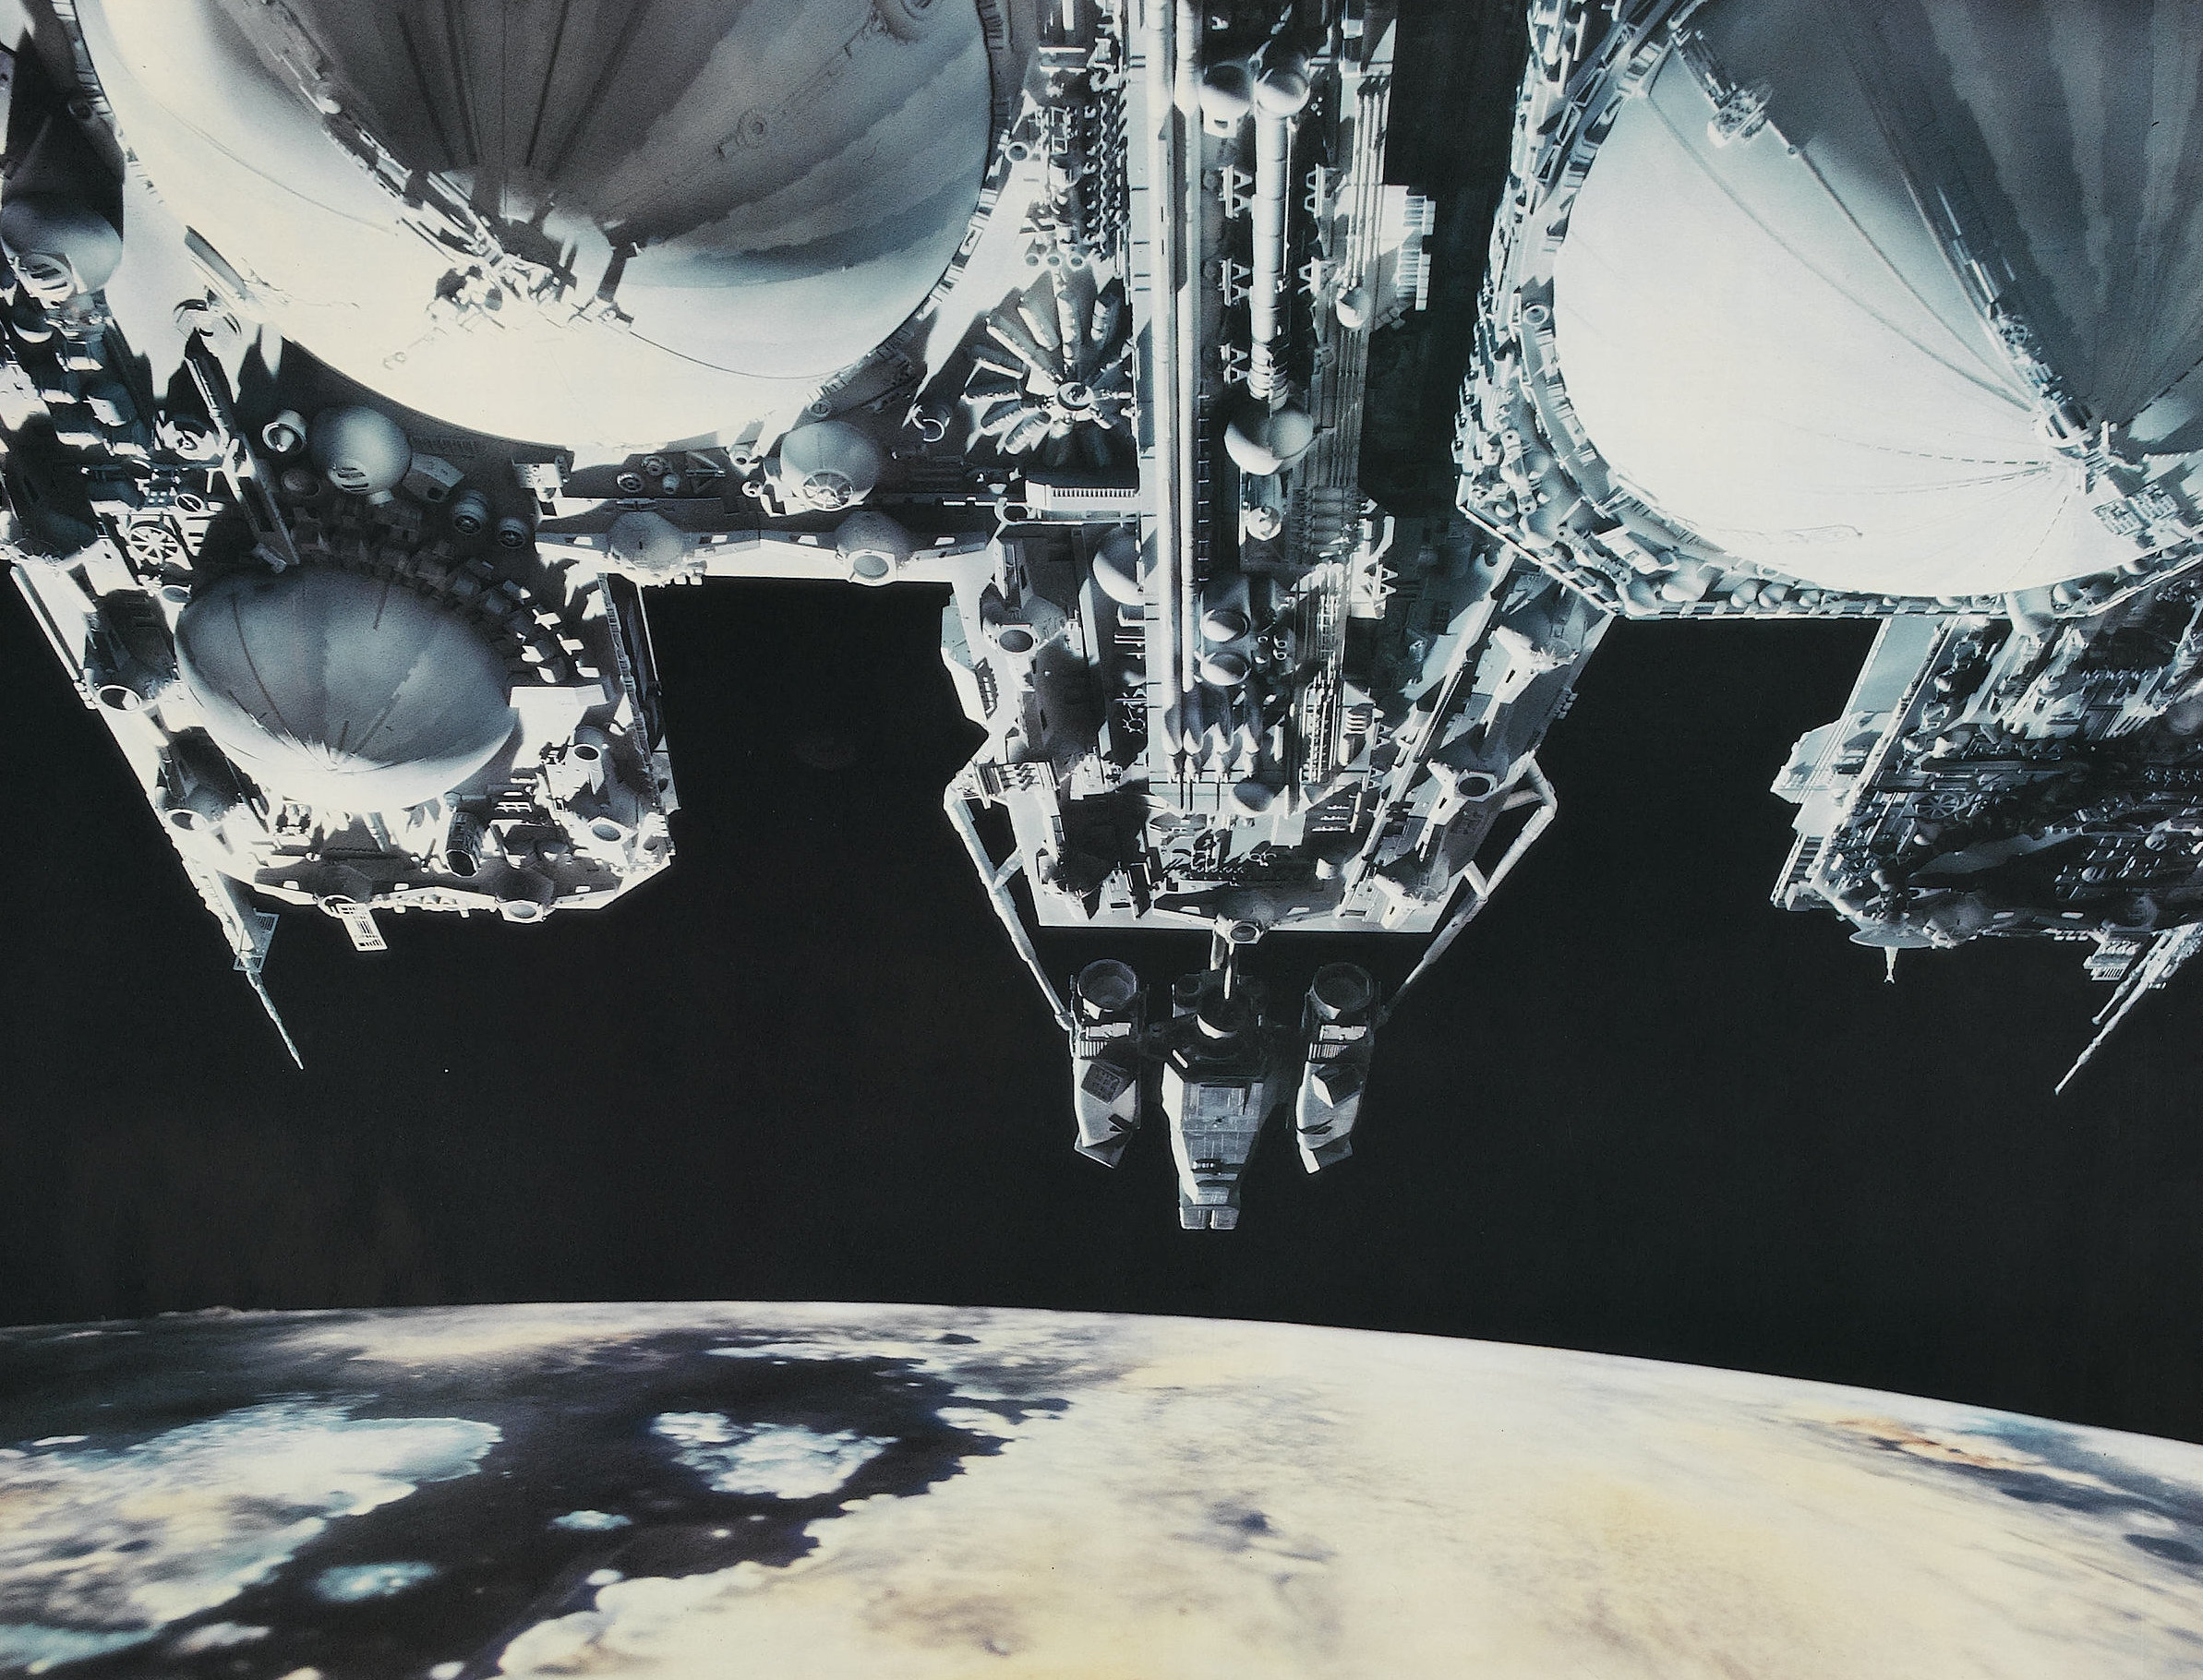 In addition to the face hugger and the alien,the film featured two more monsters in the form of its haunted house settings: HR Giger's derelict spacecraft, and Ron Cobb and Ridley Scott's floating haunted house, the Nostromo.